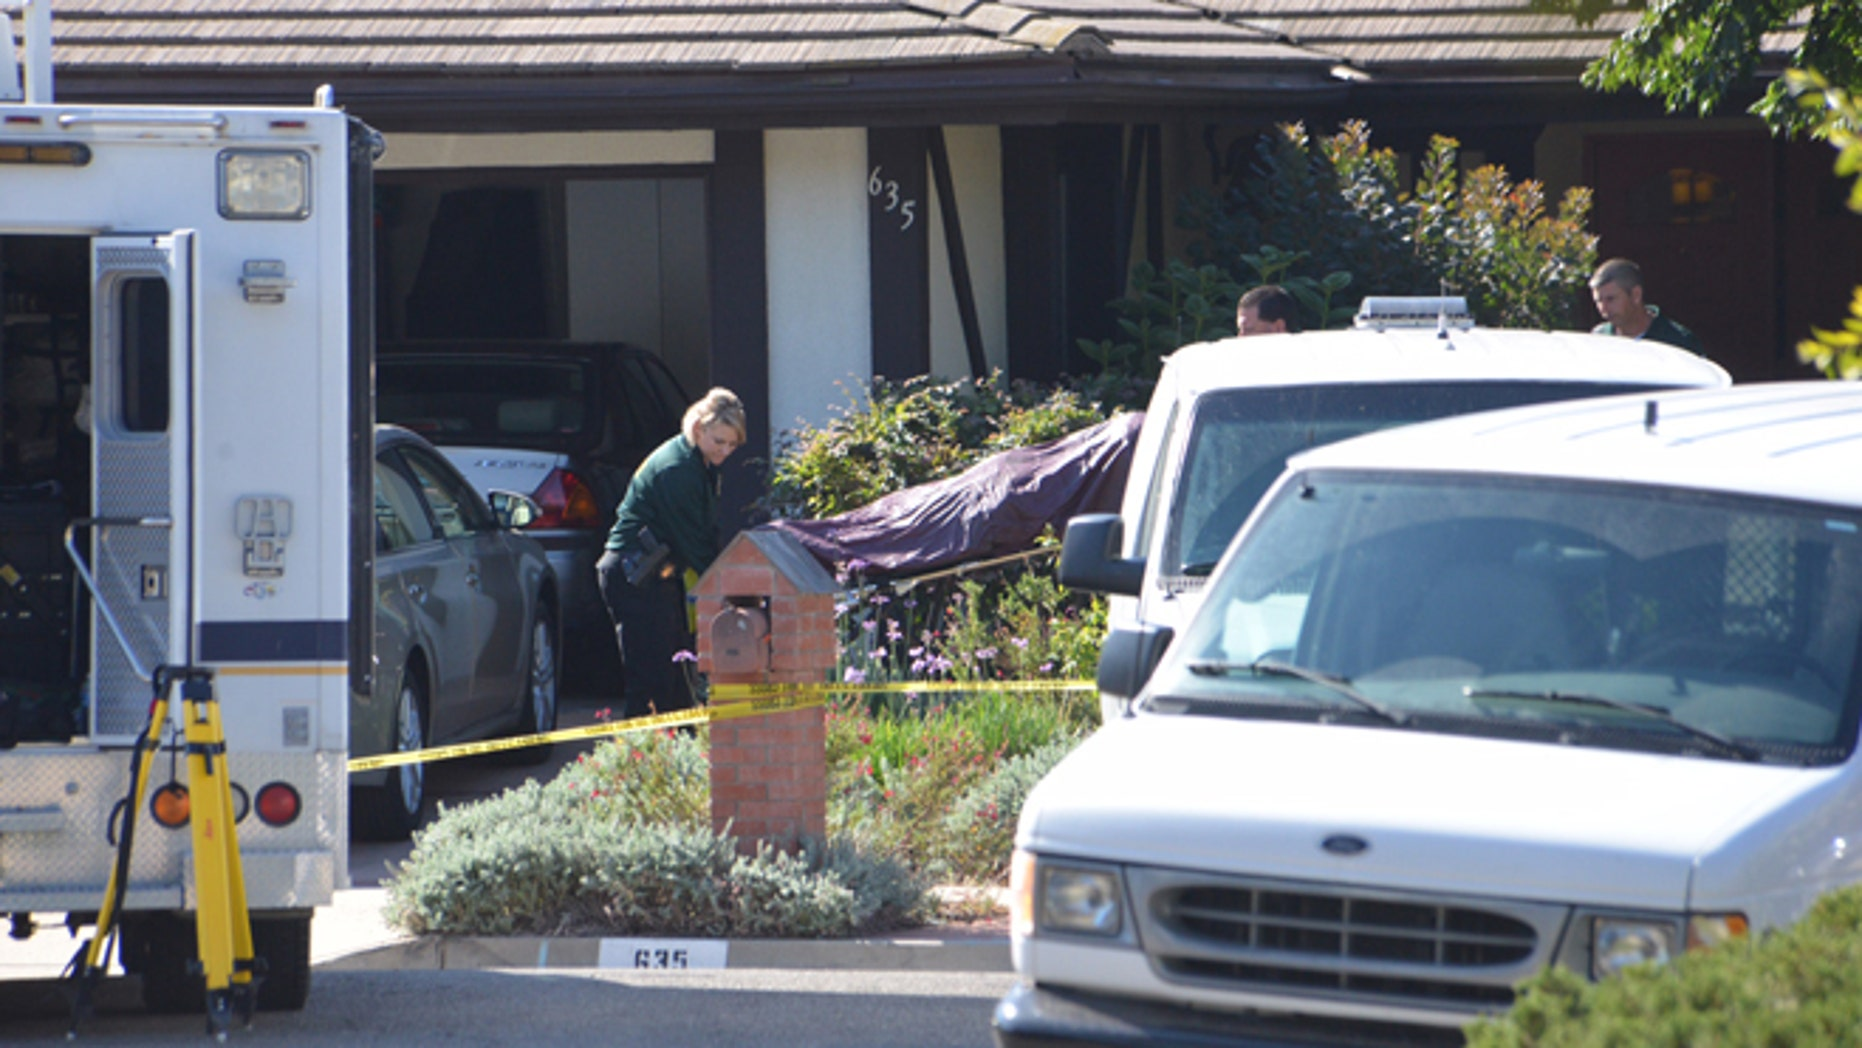 Aug. 12, 2014: Investigators remove a body from a home in Goleta, Calif., where four people and a dog were found stabbed to death the night before.